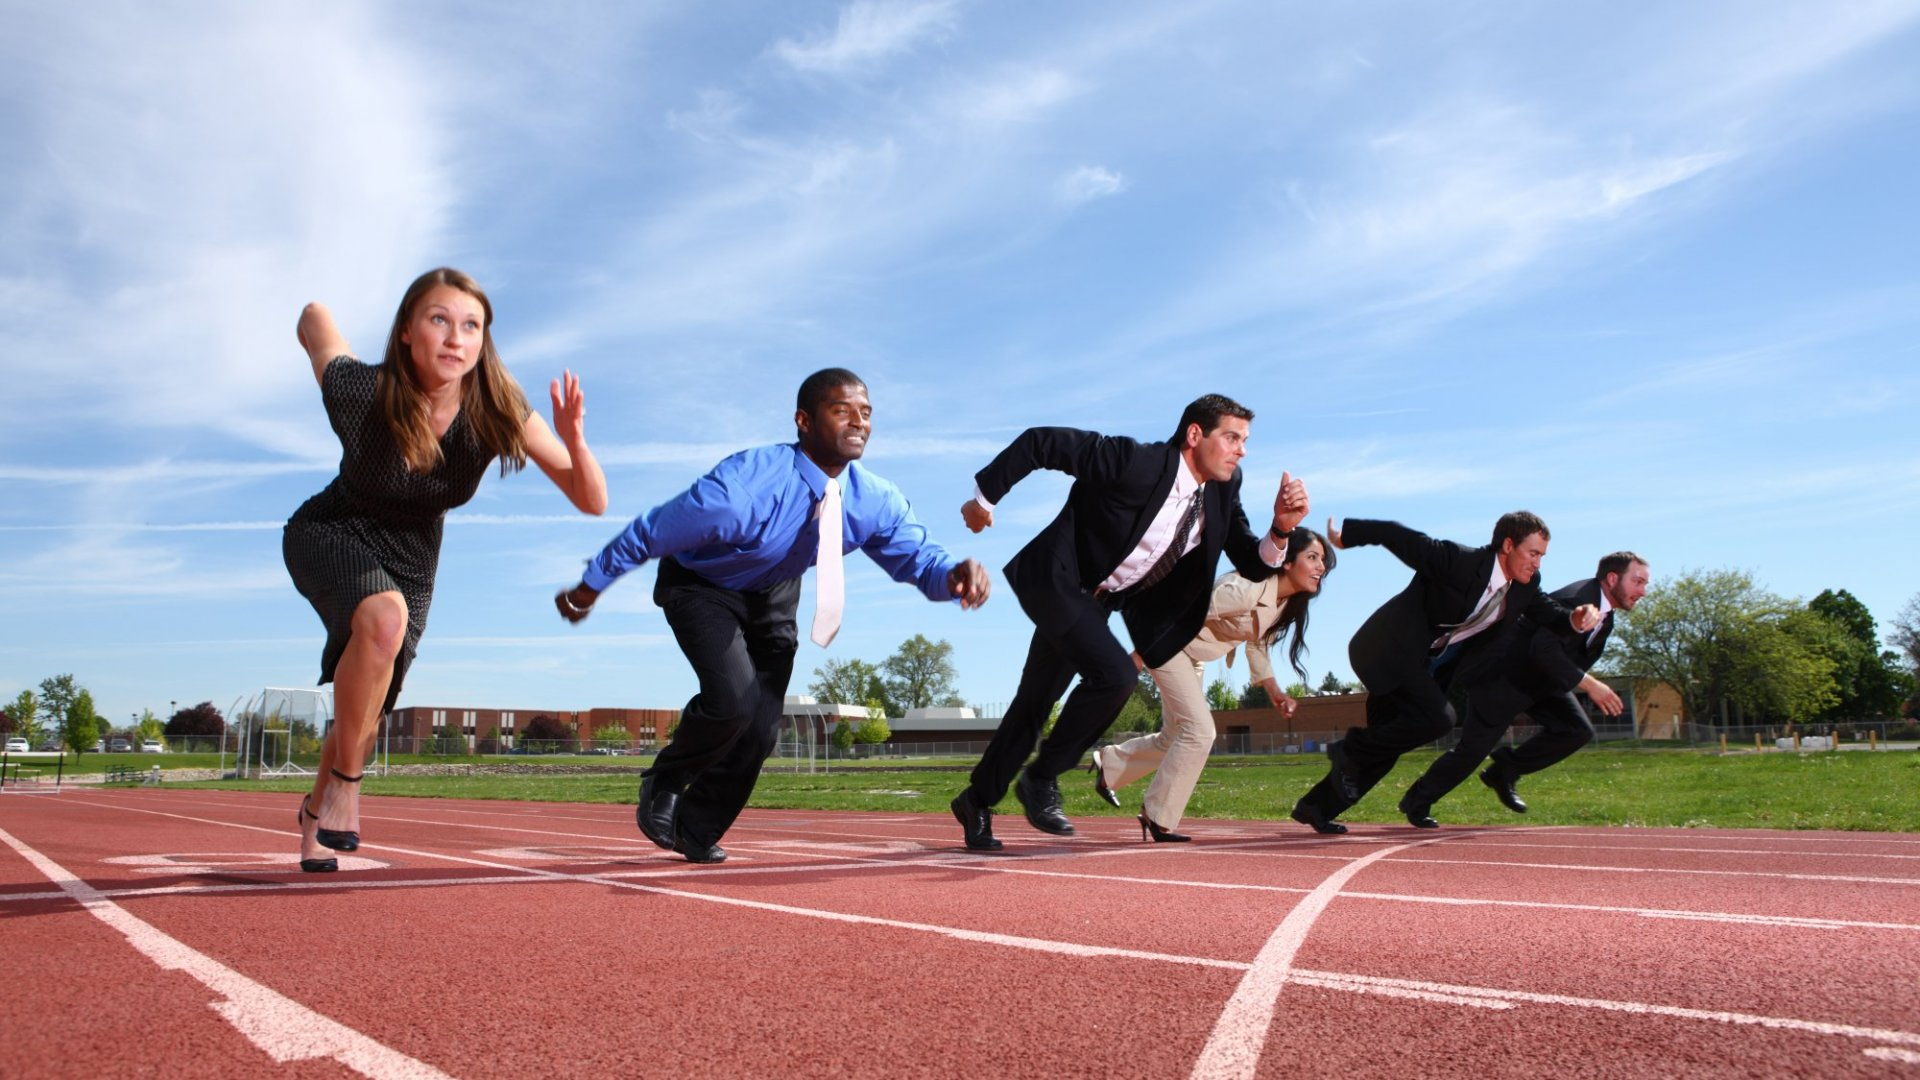 How to Survive in a Competitive Company (in 4 Simple Steps)